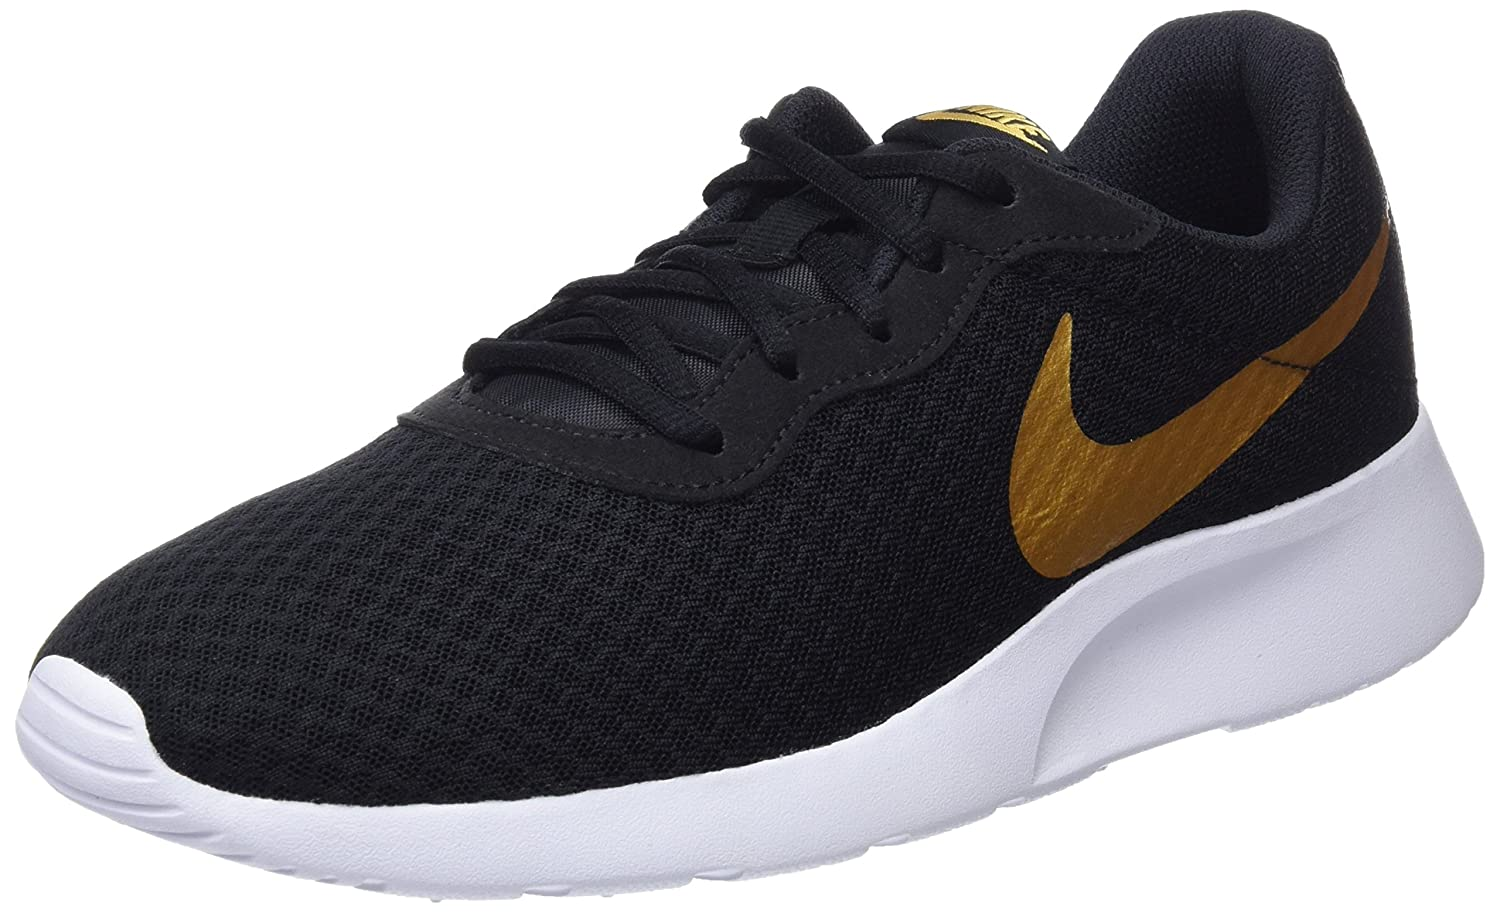 597ee570395f Nike Women s Tanjun 812655 Trainers - Black Metallic Gold Black ...